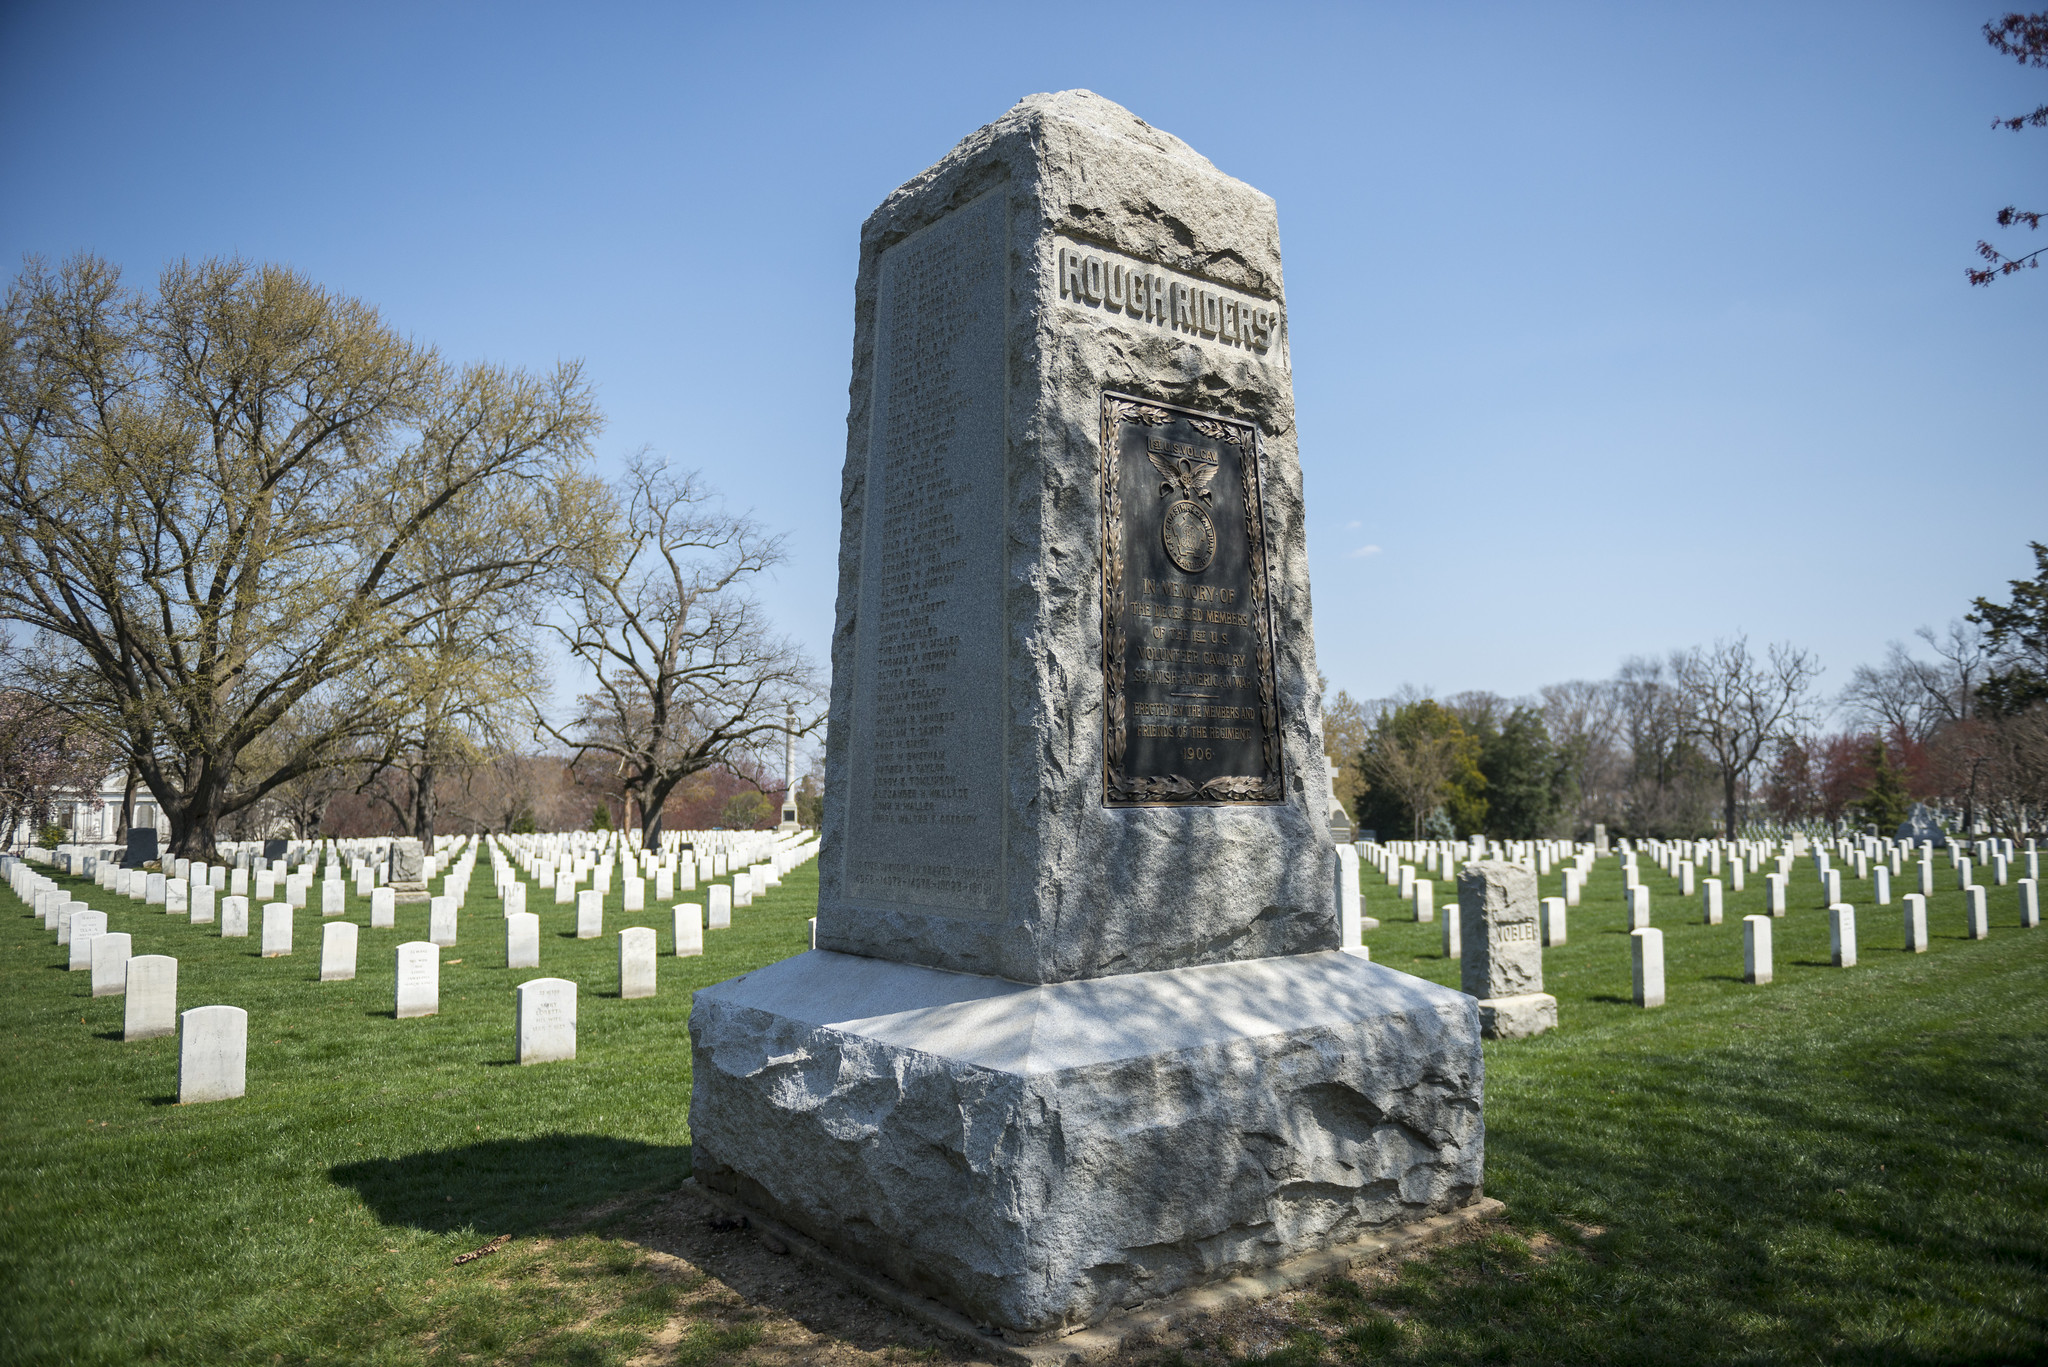 A tall granite column, memorial to the Rough Riders of the Spanish-American War